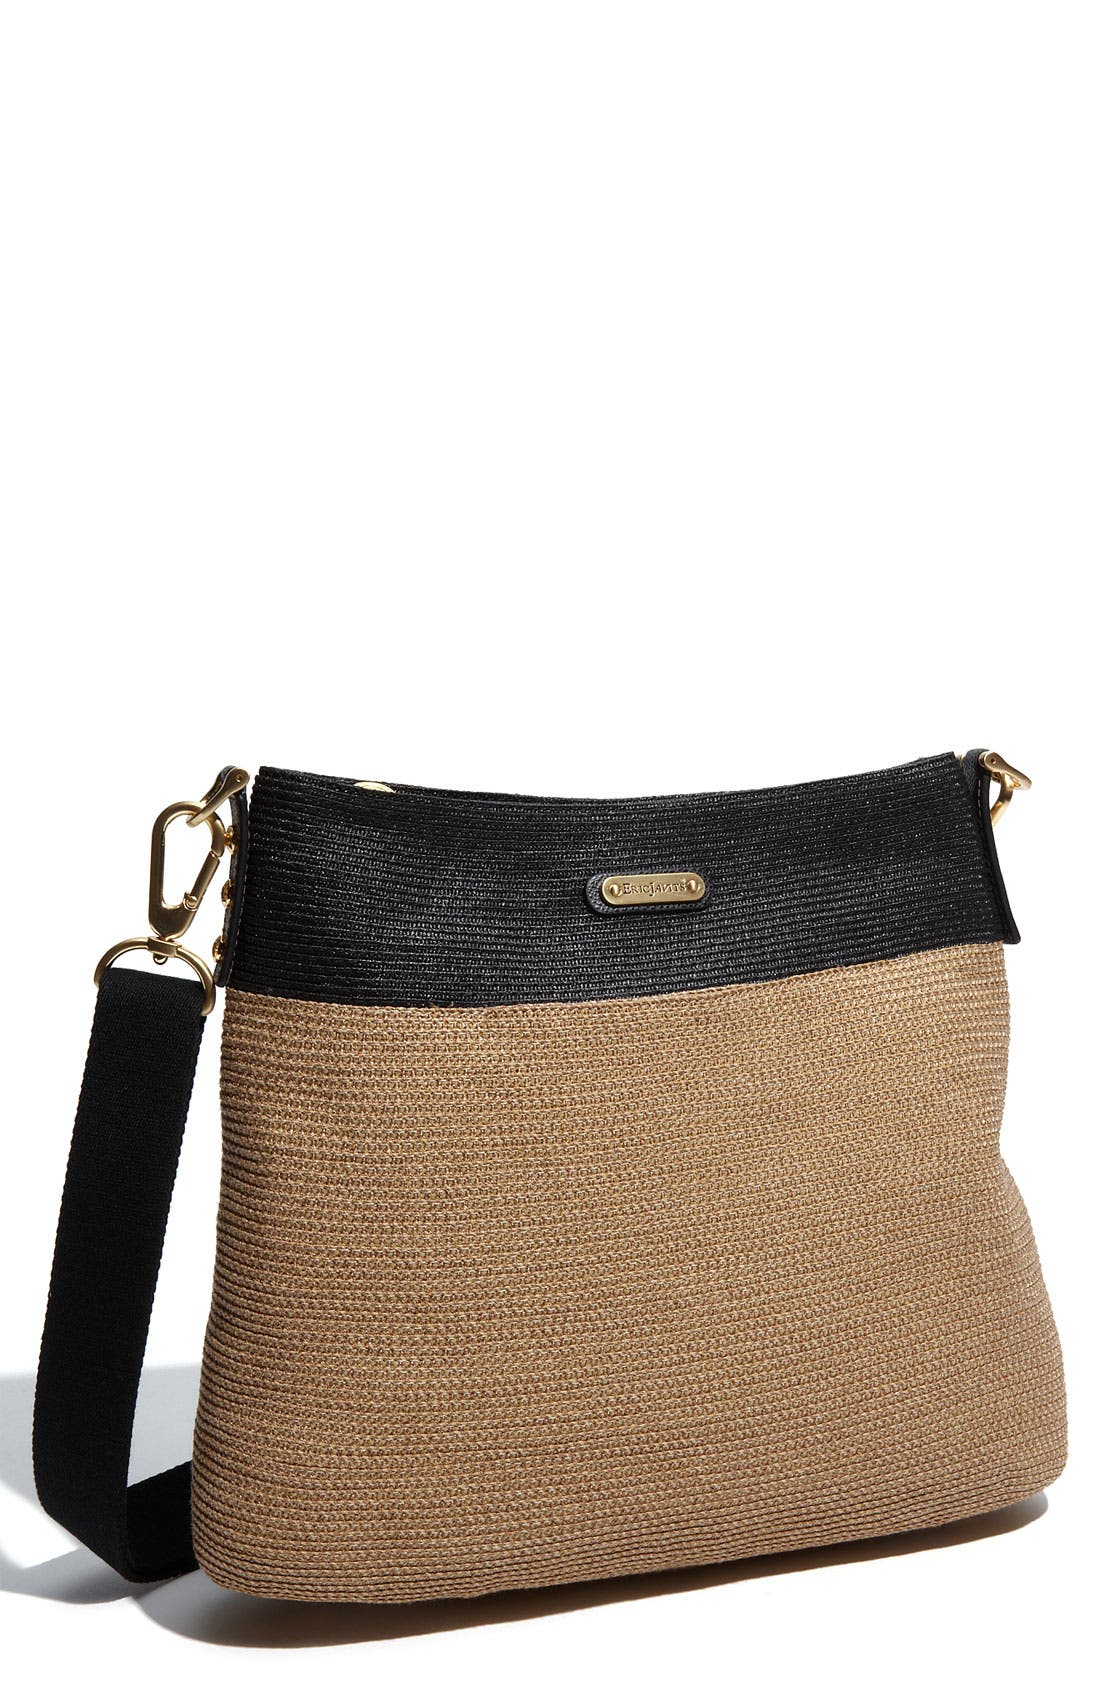 Main Image - Eric Javits 'Escape' Convertible Squishee® Shoulder Bag